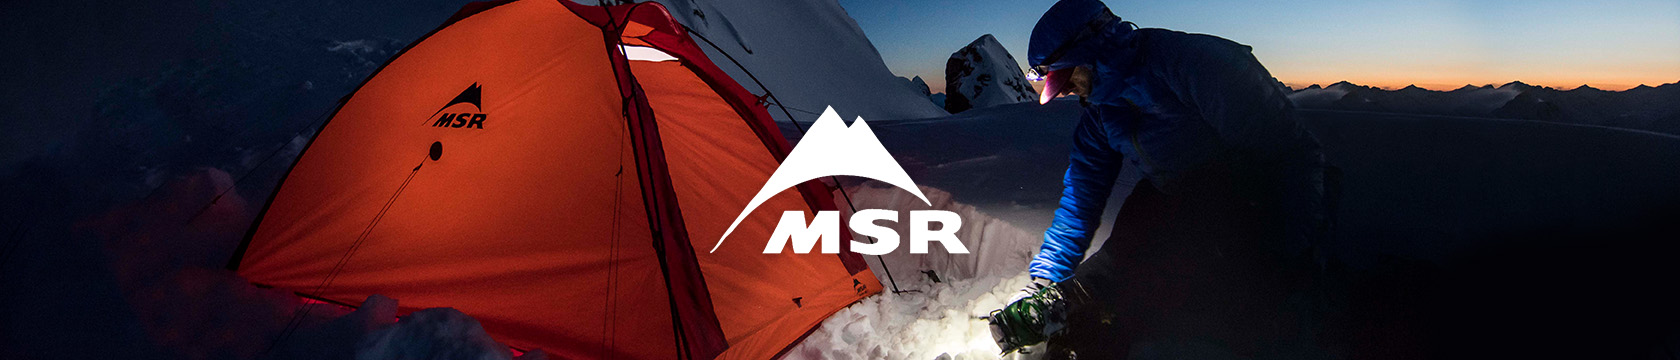 Pearson setting up an MSR tent on a snow mountain